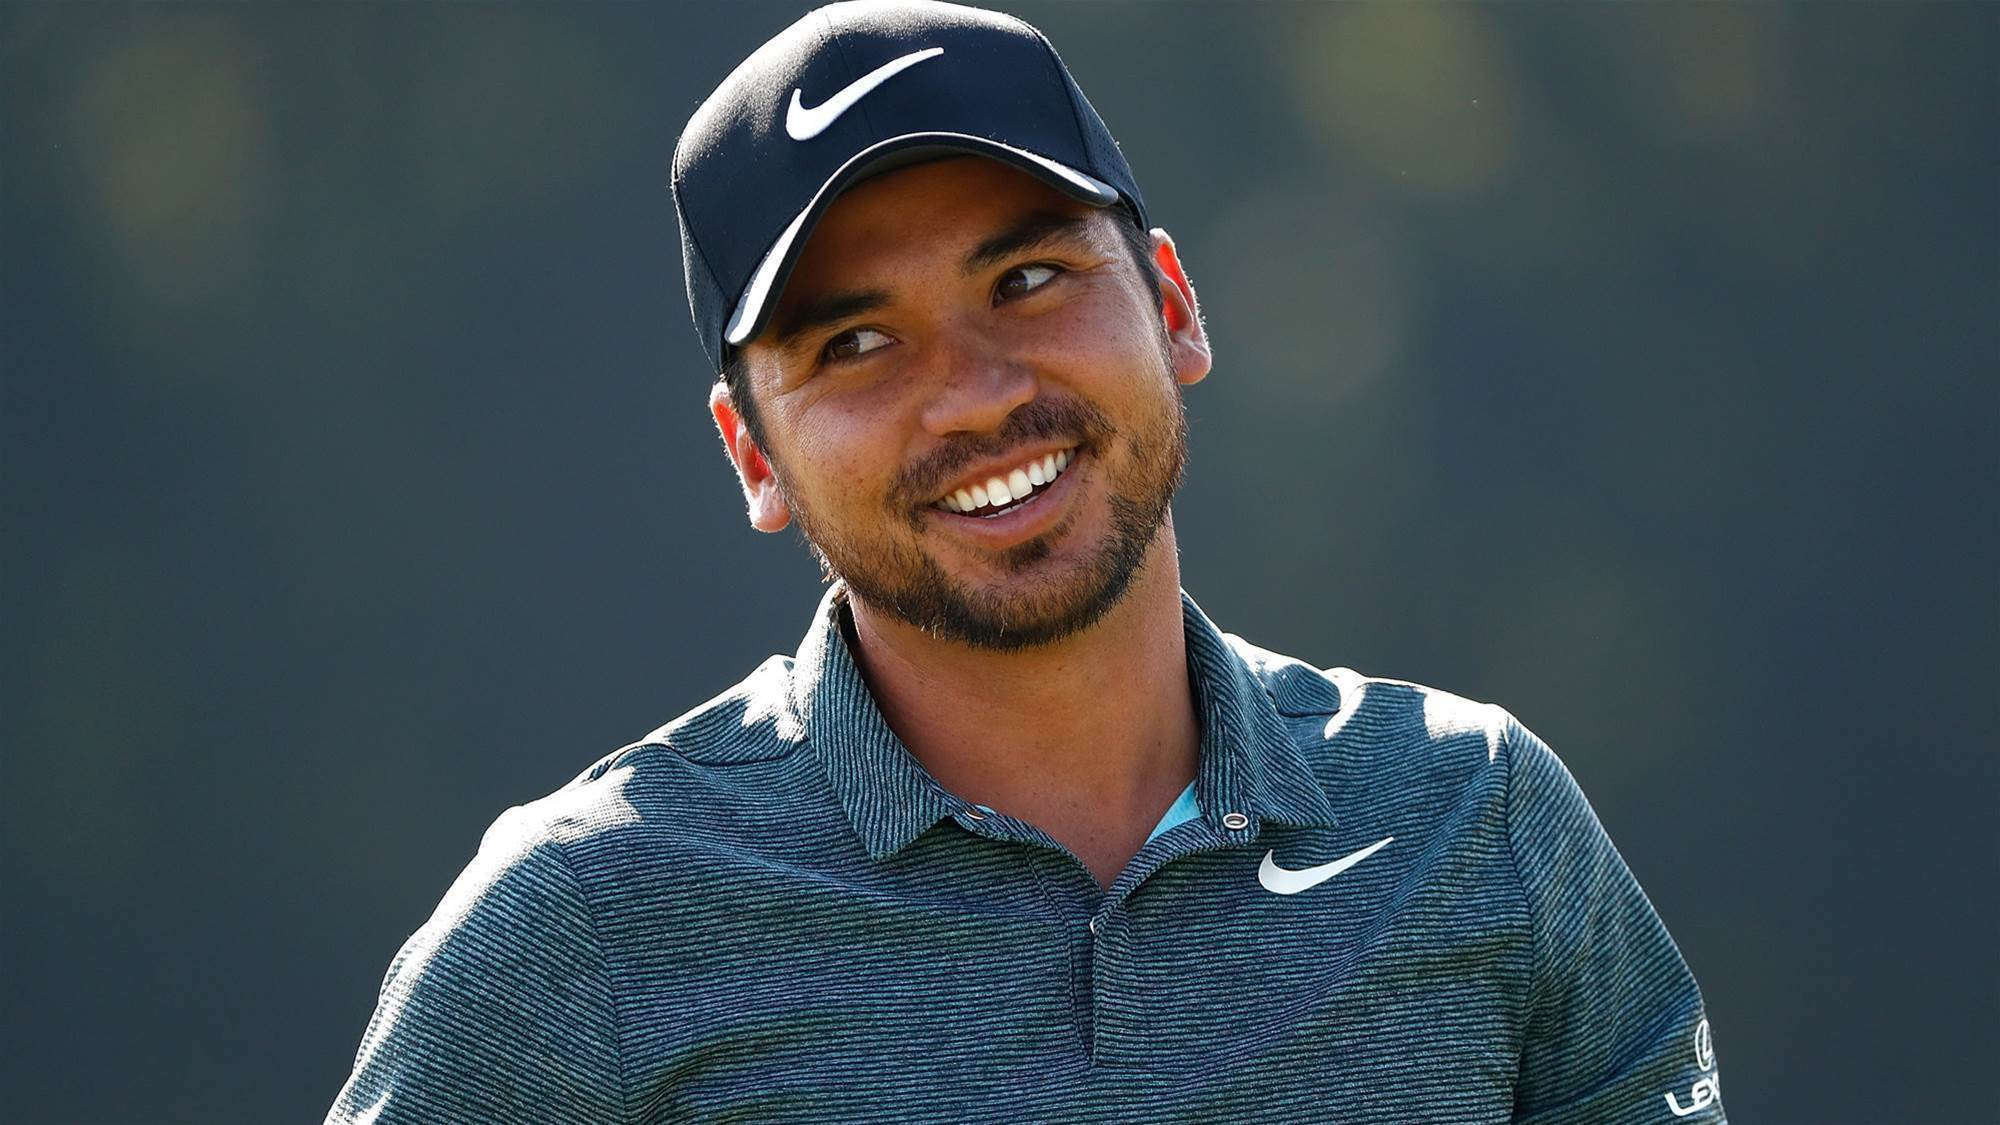 Jason Day to play Australian Open